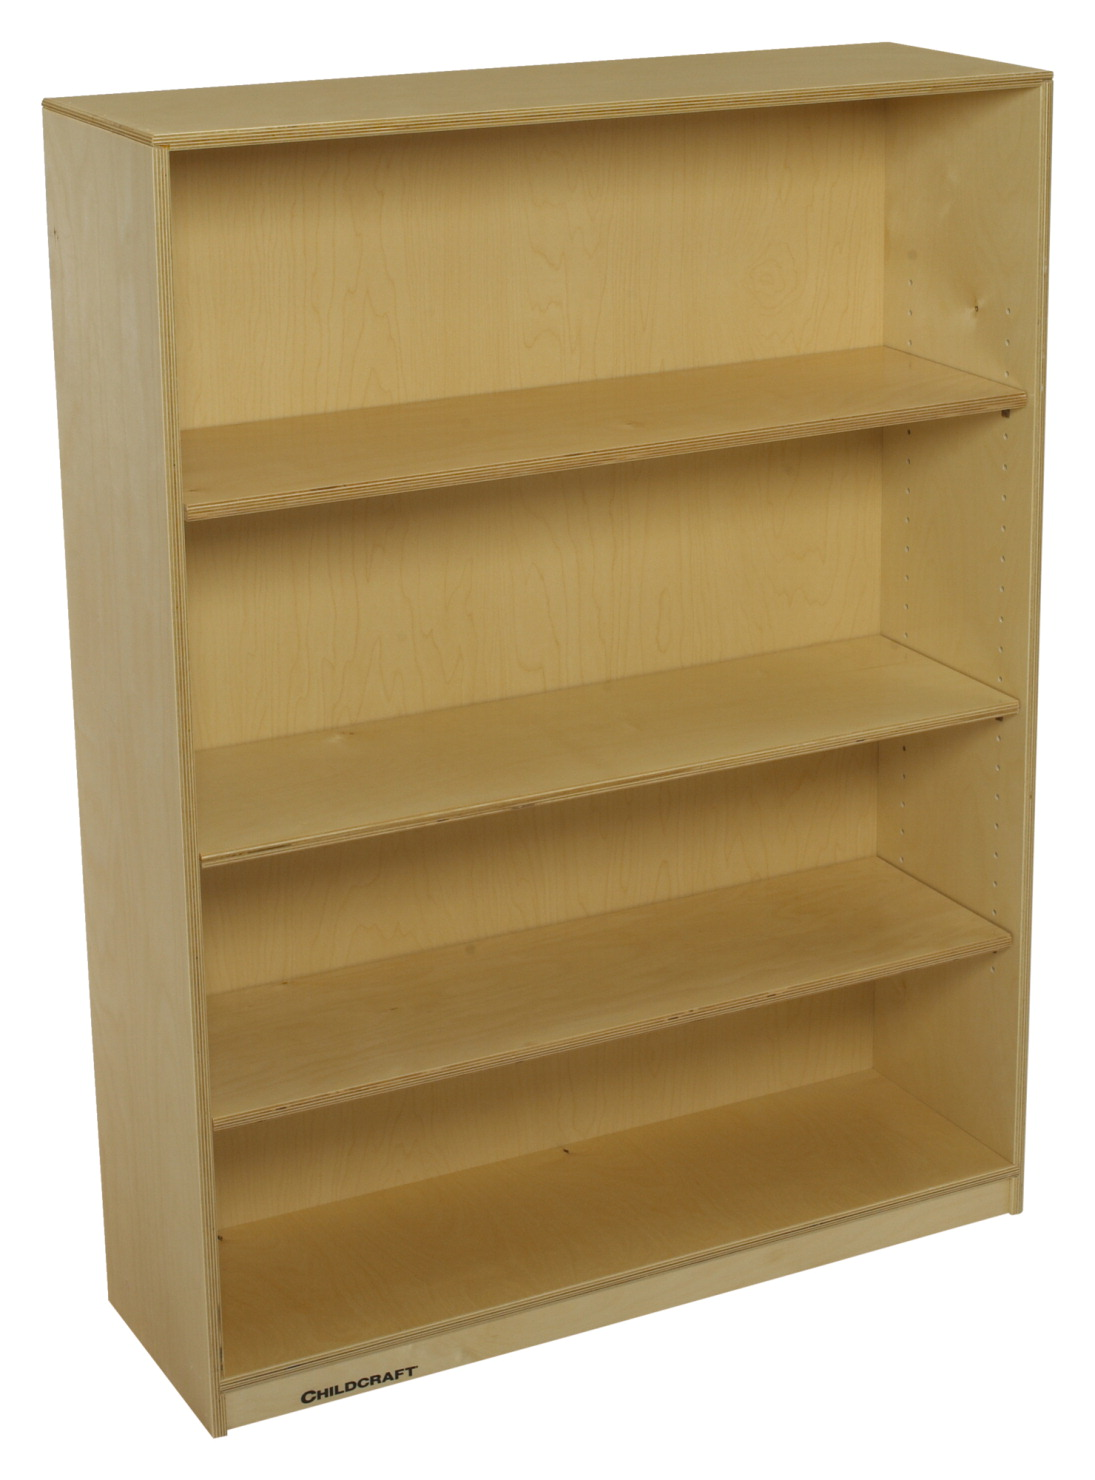 Childcraft Adjustable Bookshelf 4 Shelves 35 3 X 11 5